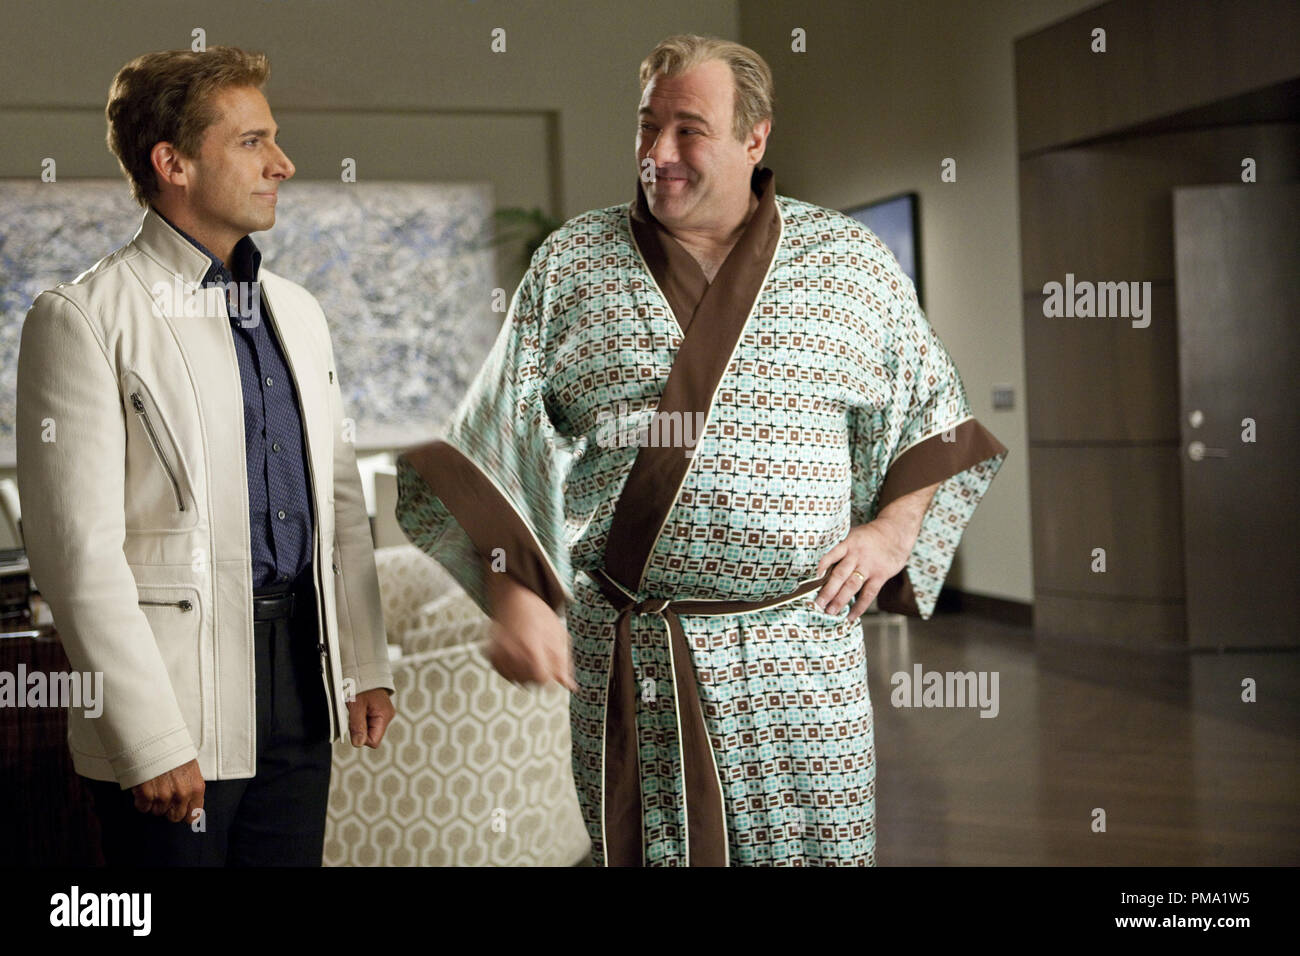 "(L-r) STEVE CARELL as Burt Wonderstone and JAMES GANDOLFINI as Doug Munny in New Line Cinemas comedy ""THE INCREDIBLE BURT WONDERSTONE,"" a Warner Bros. Pictures release. - Stock Image"